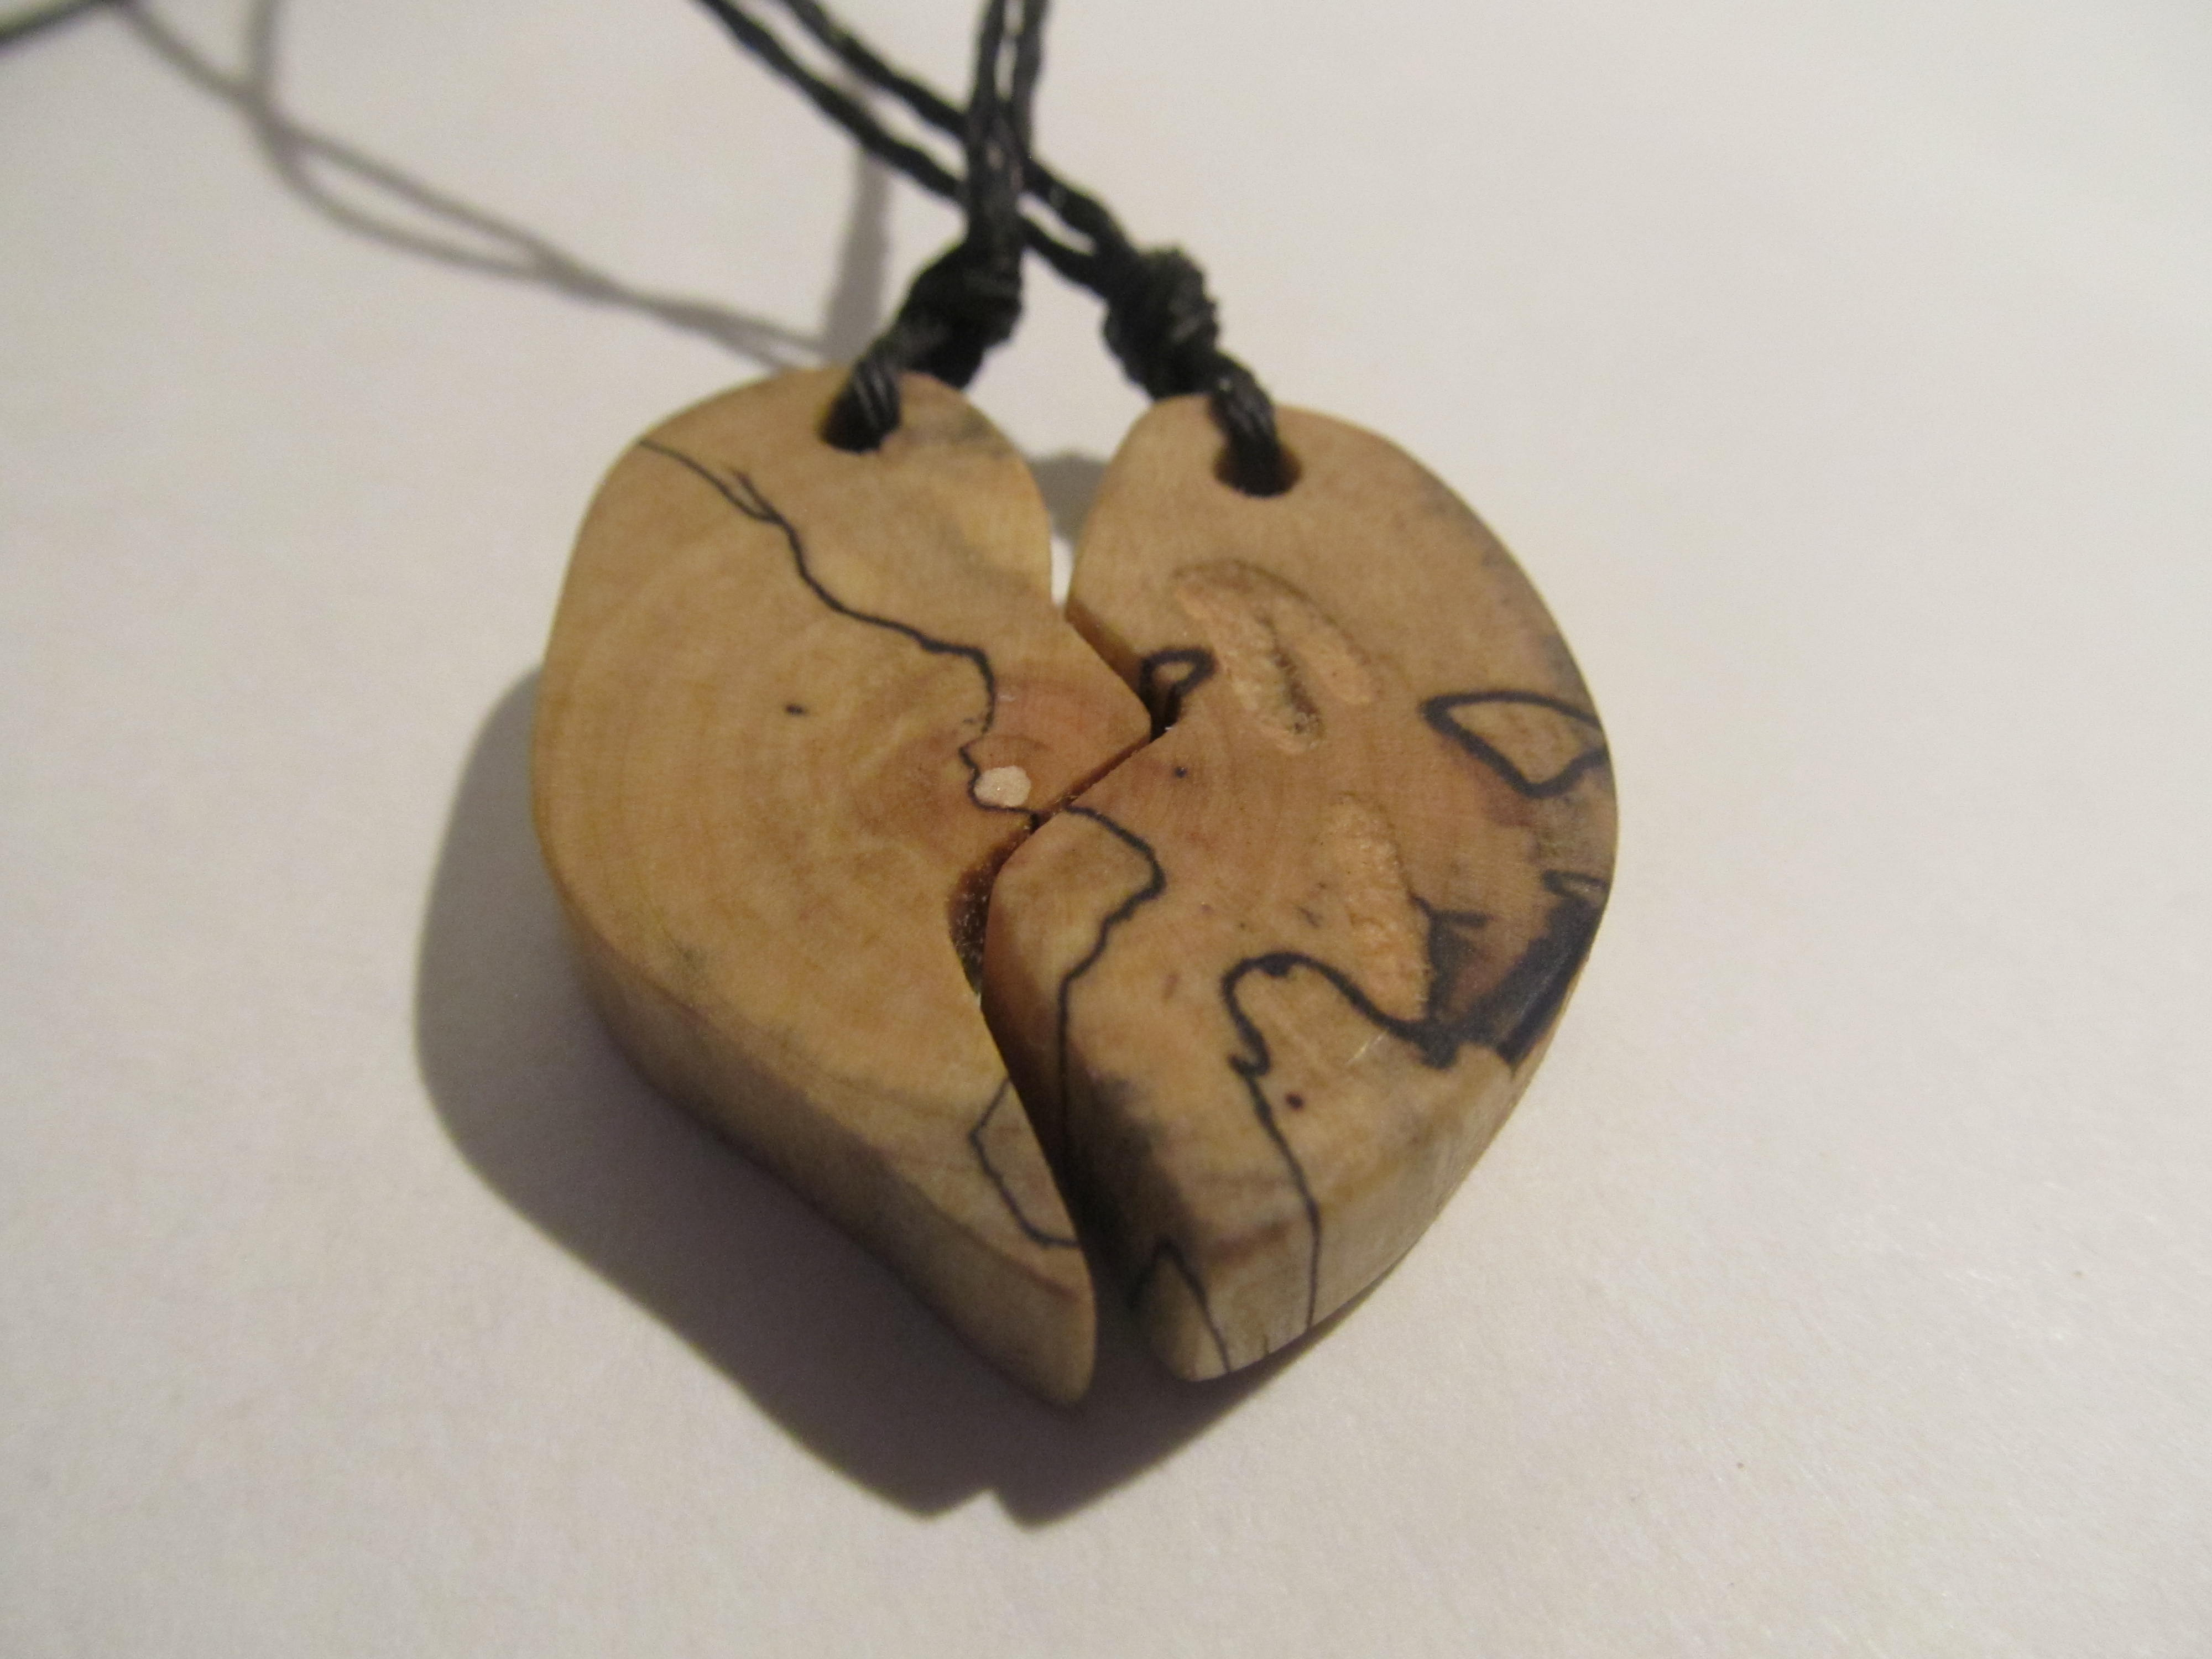 6cee9fc798551 2 BFF Necklaces, Heartbreak, Heart Pendant, Half Heart, Best Friends  Forever, Puzzle Pieces, Wooden Pieces Jewelry, Woodenist, FREE Shipping